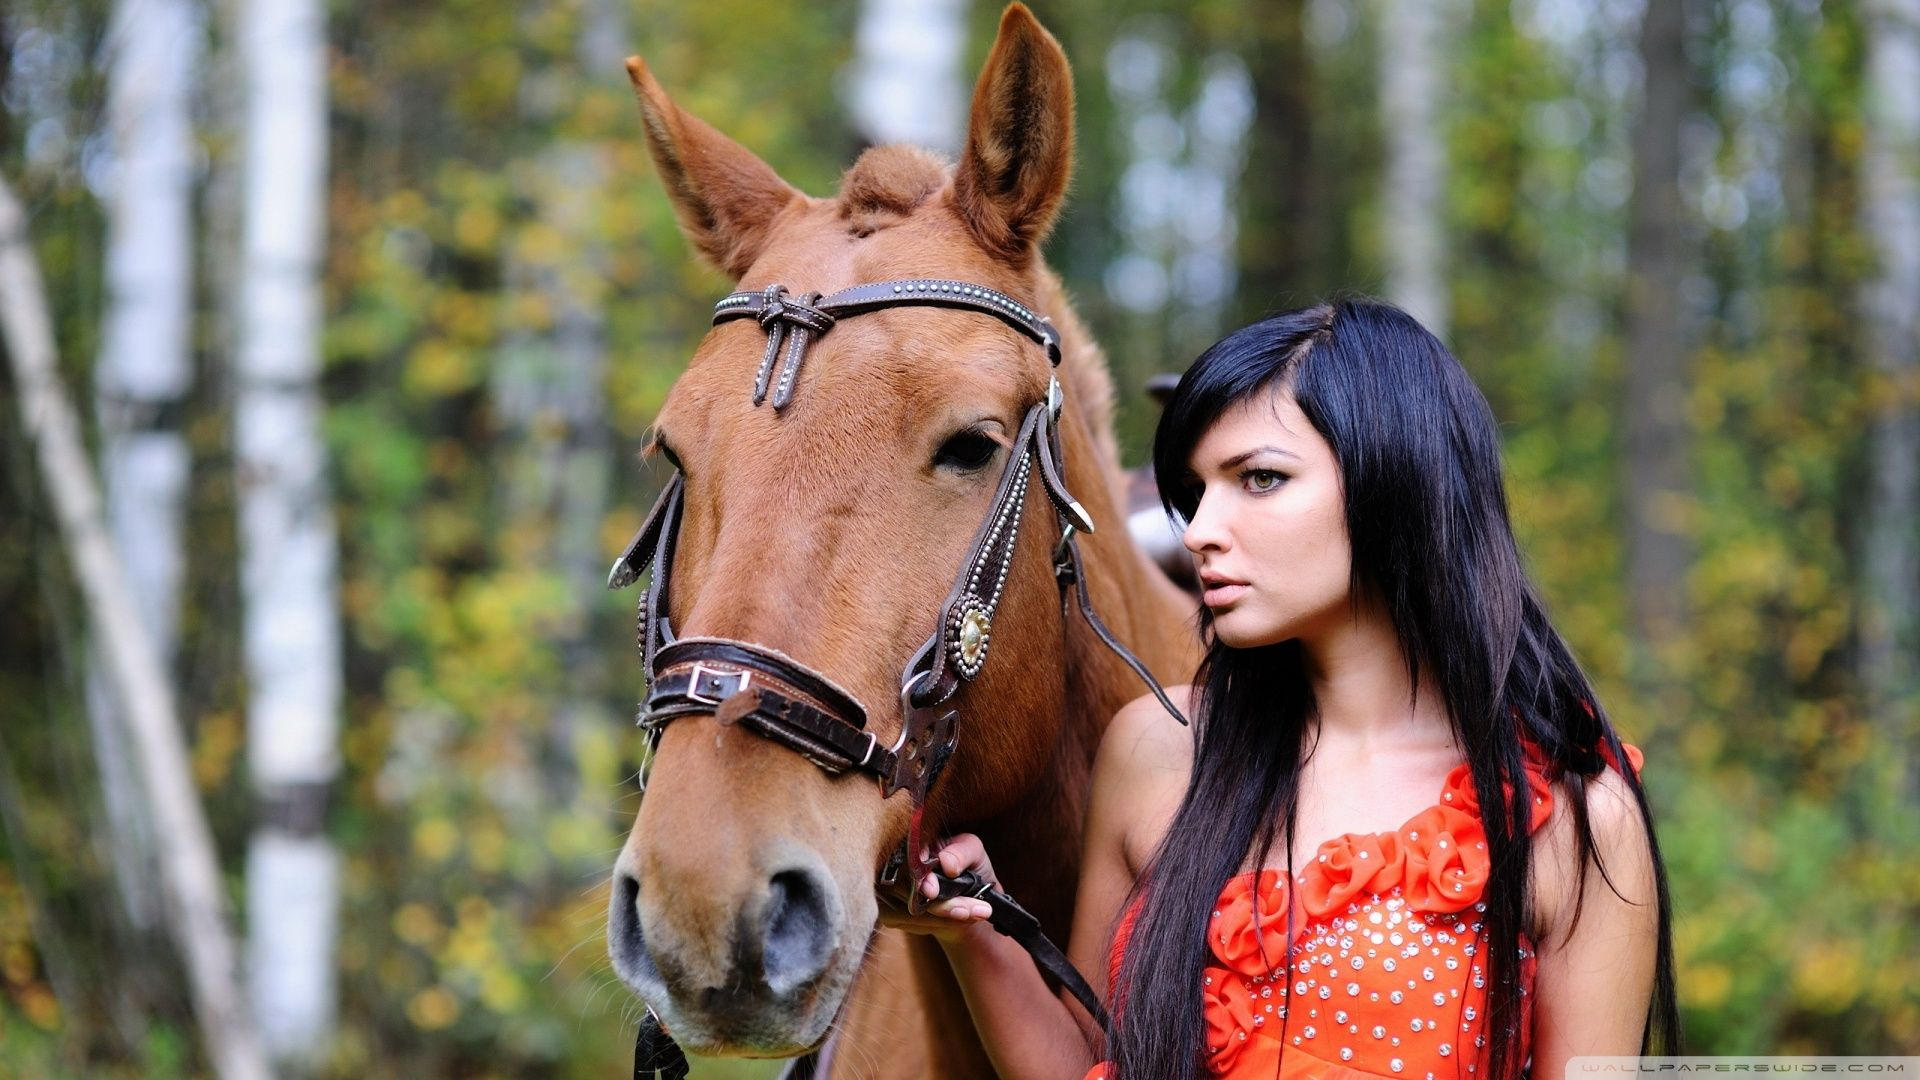 Wonderful Wallpaper Horse Girly - f4a7af9c7a81d86372069e4fb92a1165  Best Photo Reference_809689.jpg